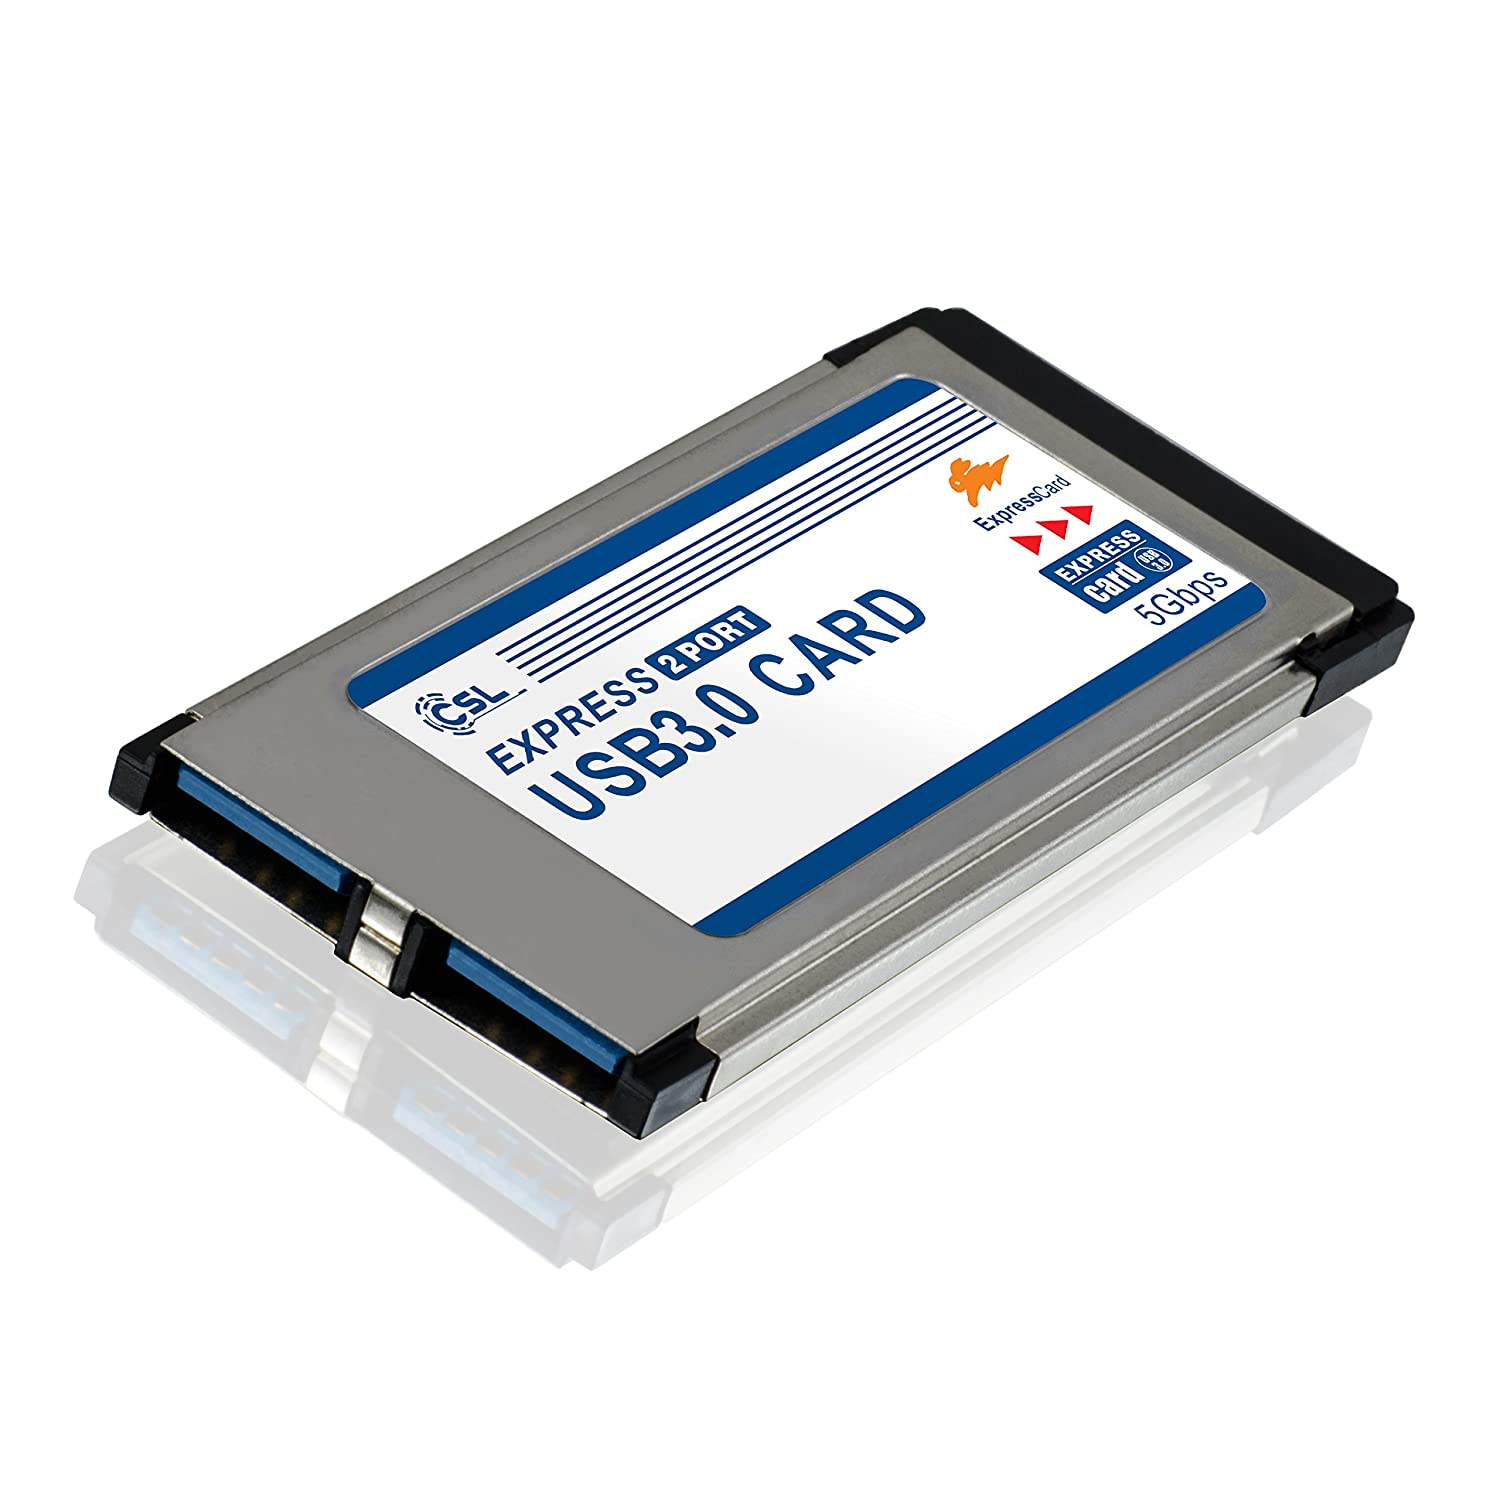 CSL - USB 3.0 Tarjeta PCMCIA Express Card Super Speed 34 mm 2 Puertos Compatible con Windows 10 para Notebook y Laptop